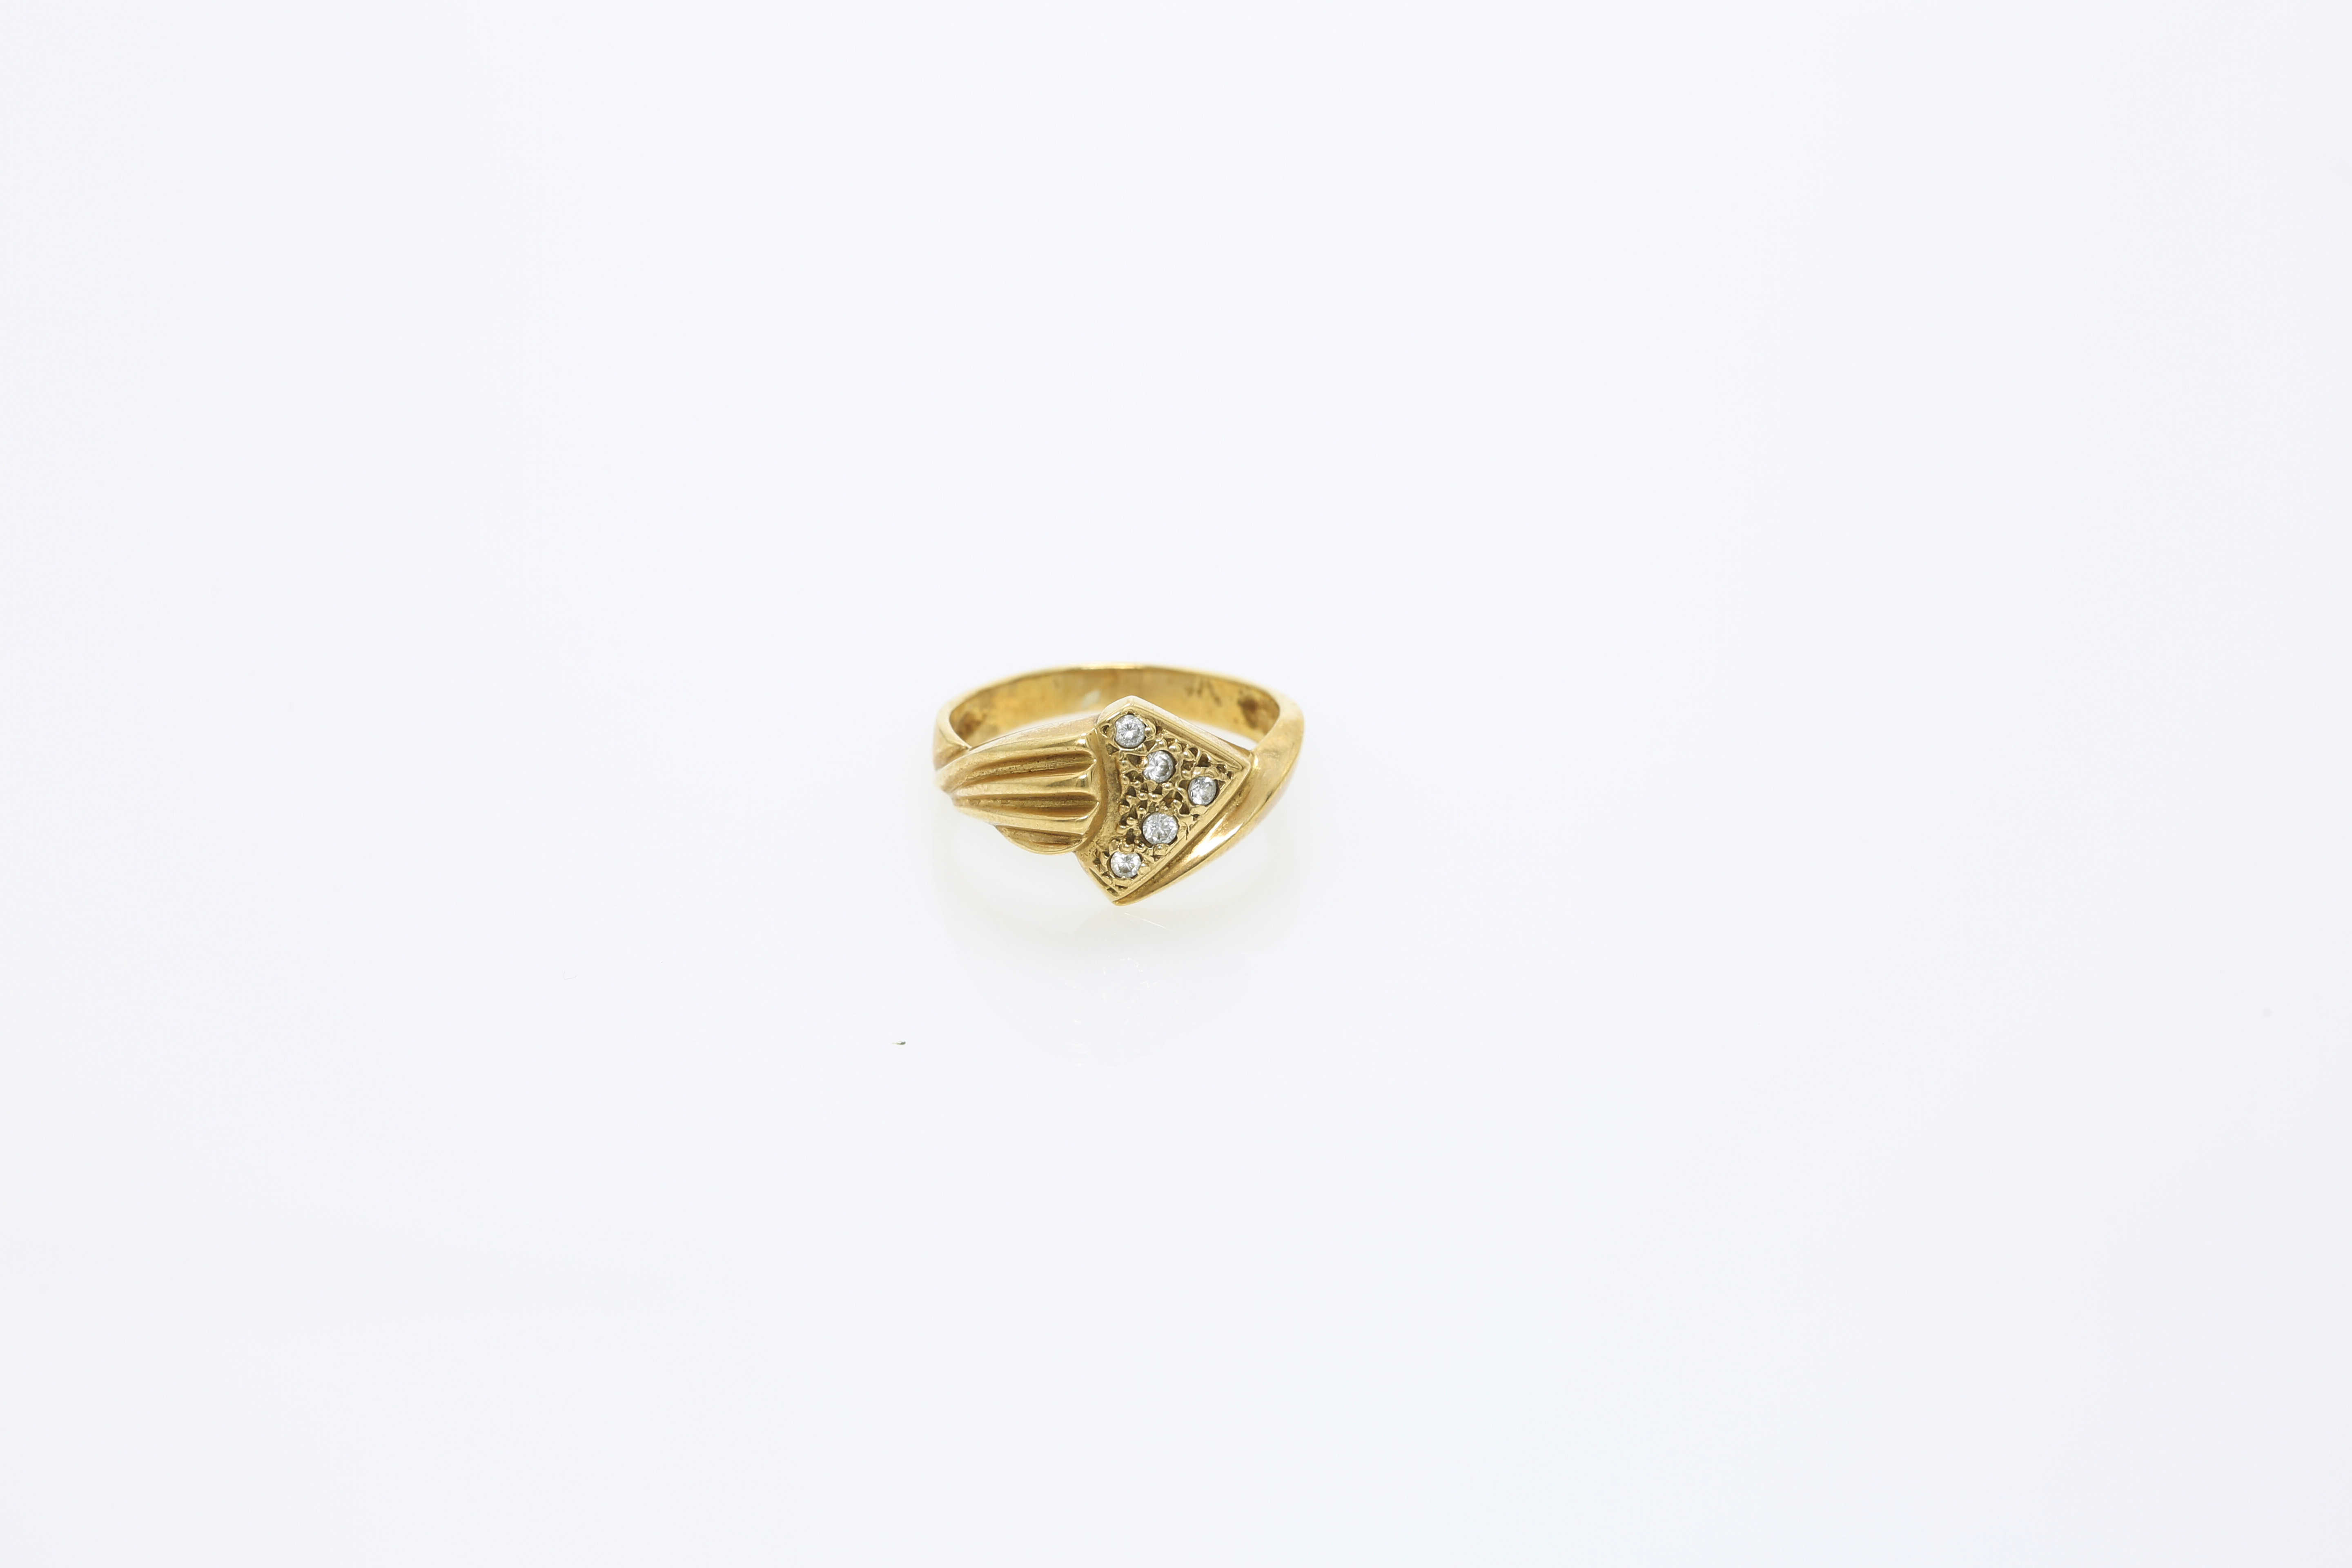 A Lady's gold ring. Approx: 3 gr. - Image 2 of 2